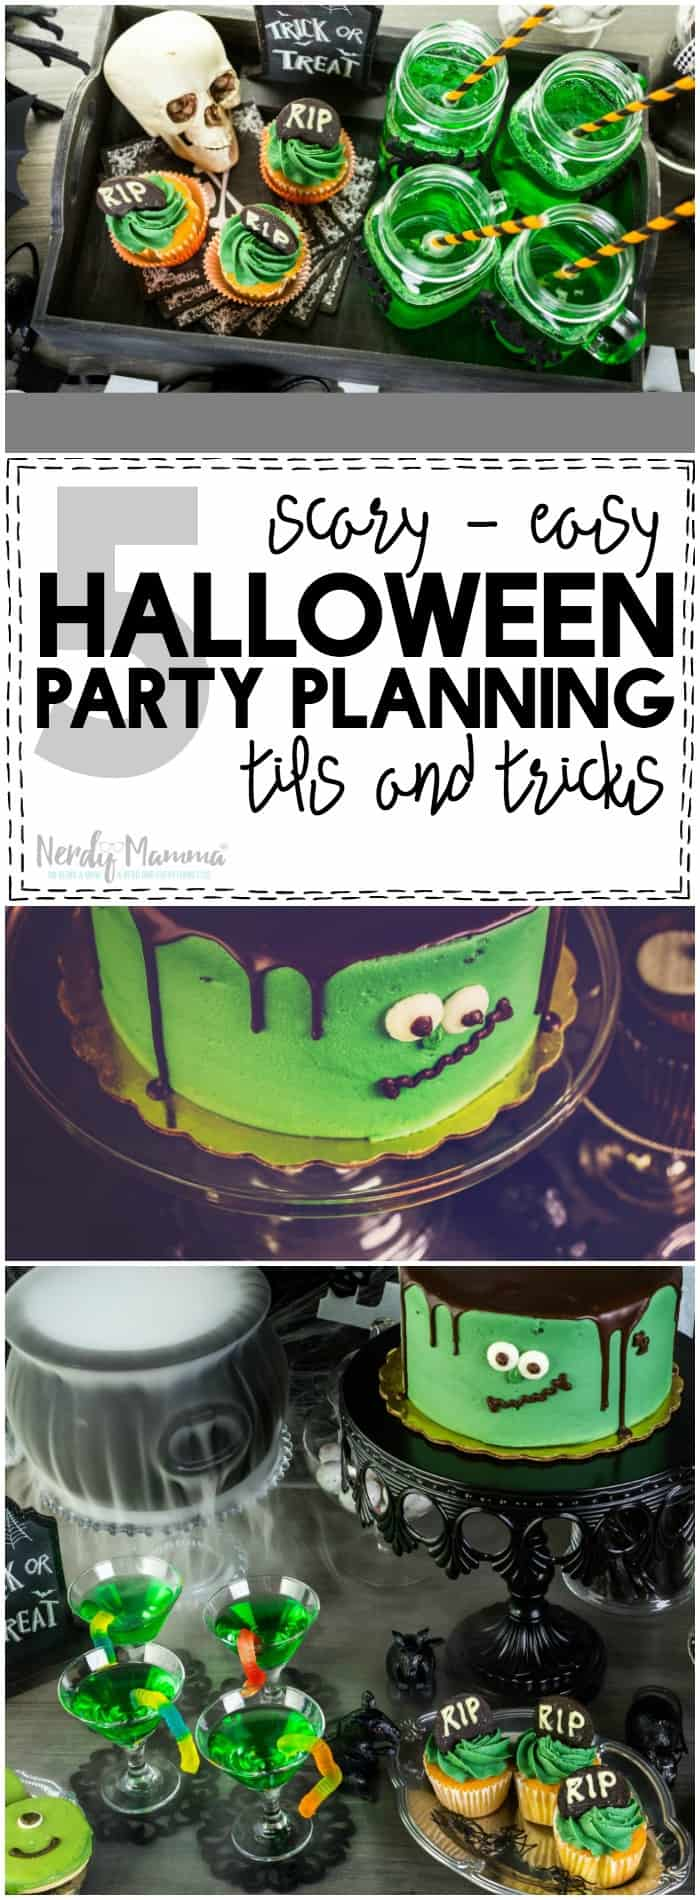 I love how simple setting up a Halloween Party can be with these 5 Scary-Easy Halloween Party Planning Tips and Tricks! She makes it so simple...